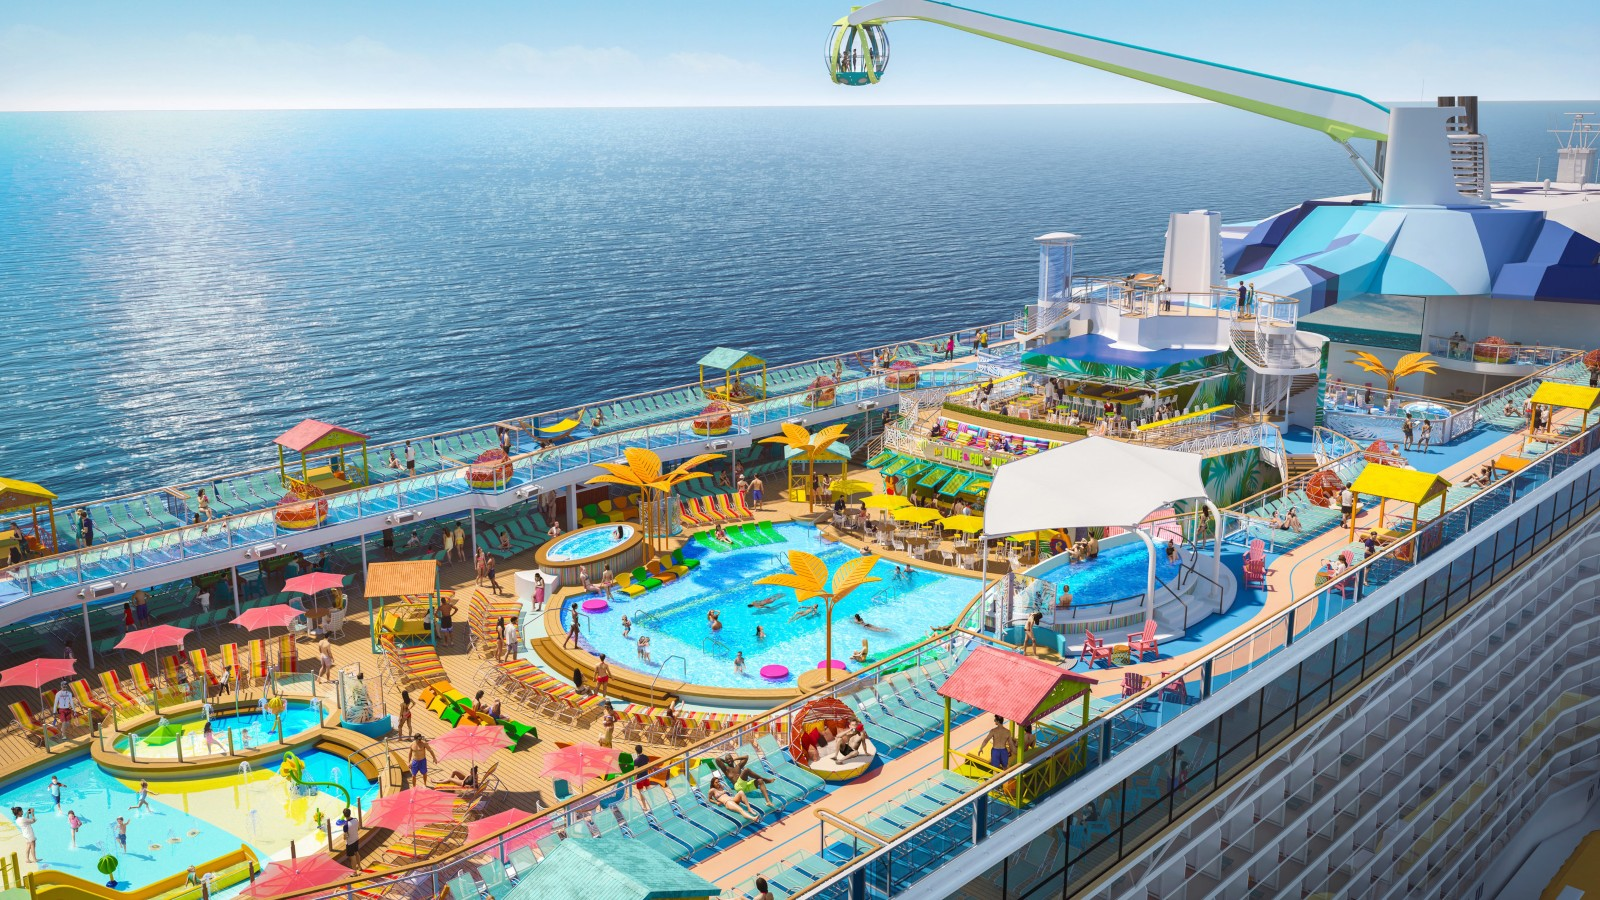 Royal Caribbean plans luxury cruises from Israel for fully vaccinated